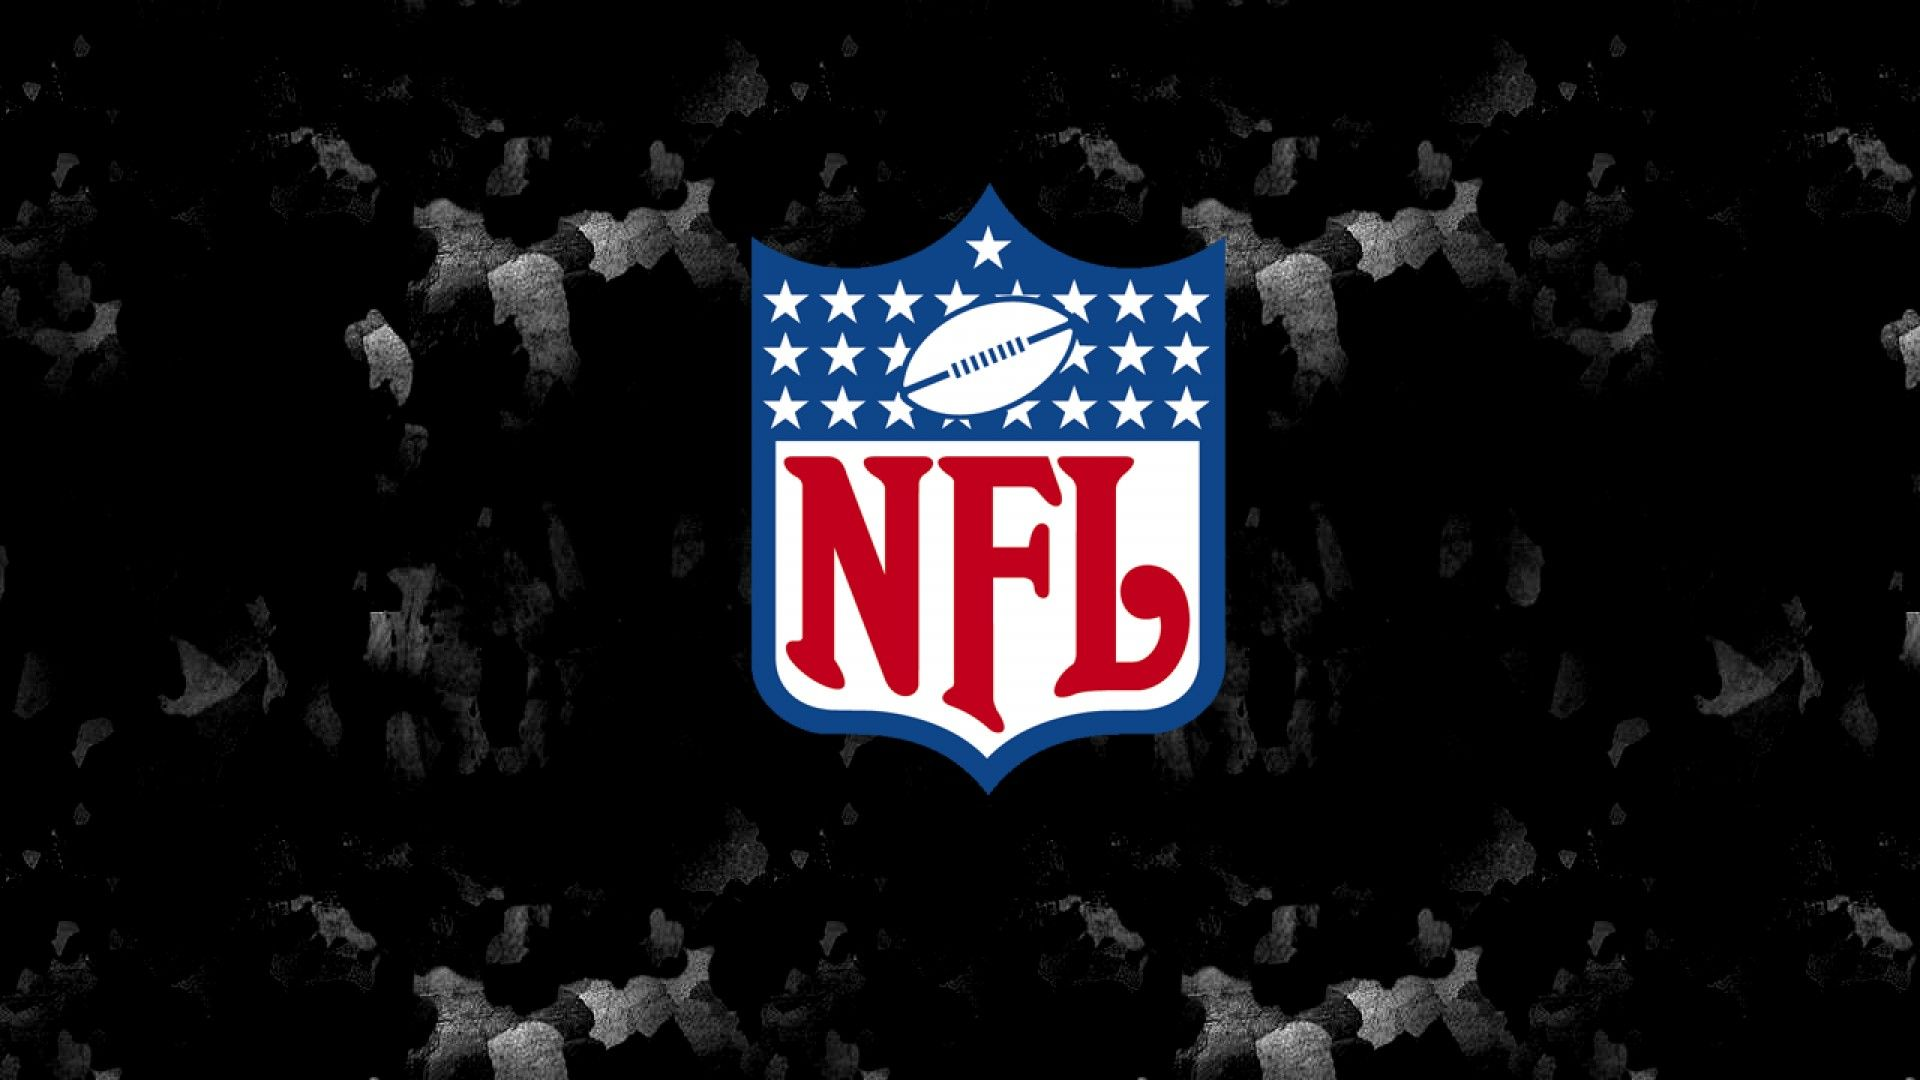 NFL Wallpaper Picture Image 1920x1080